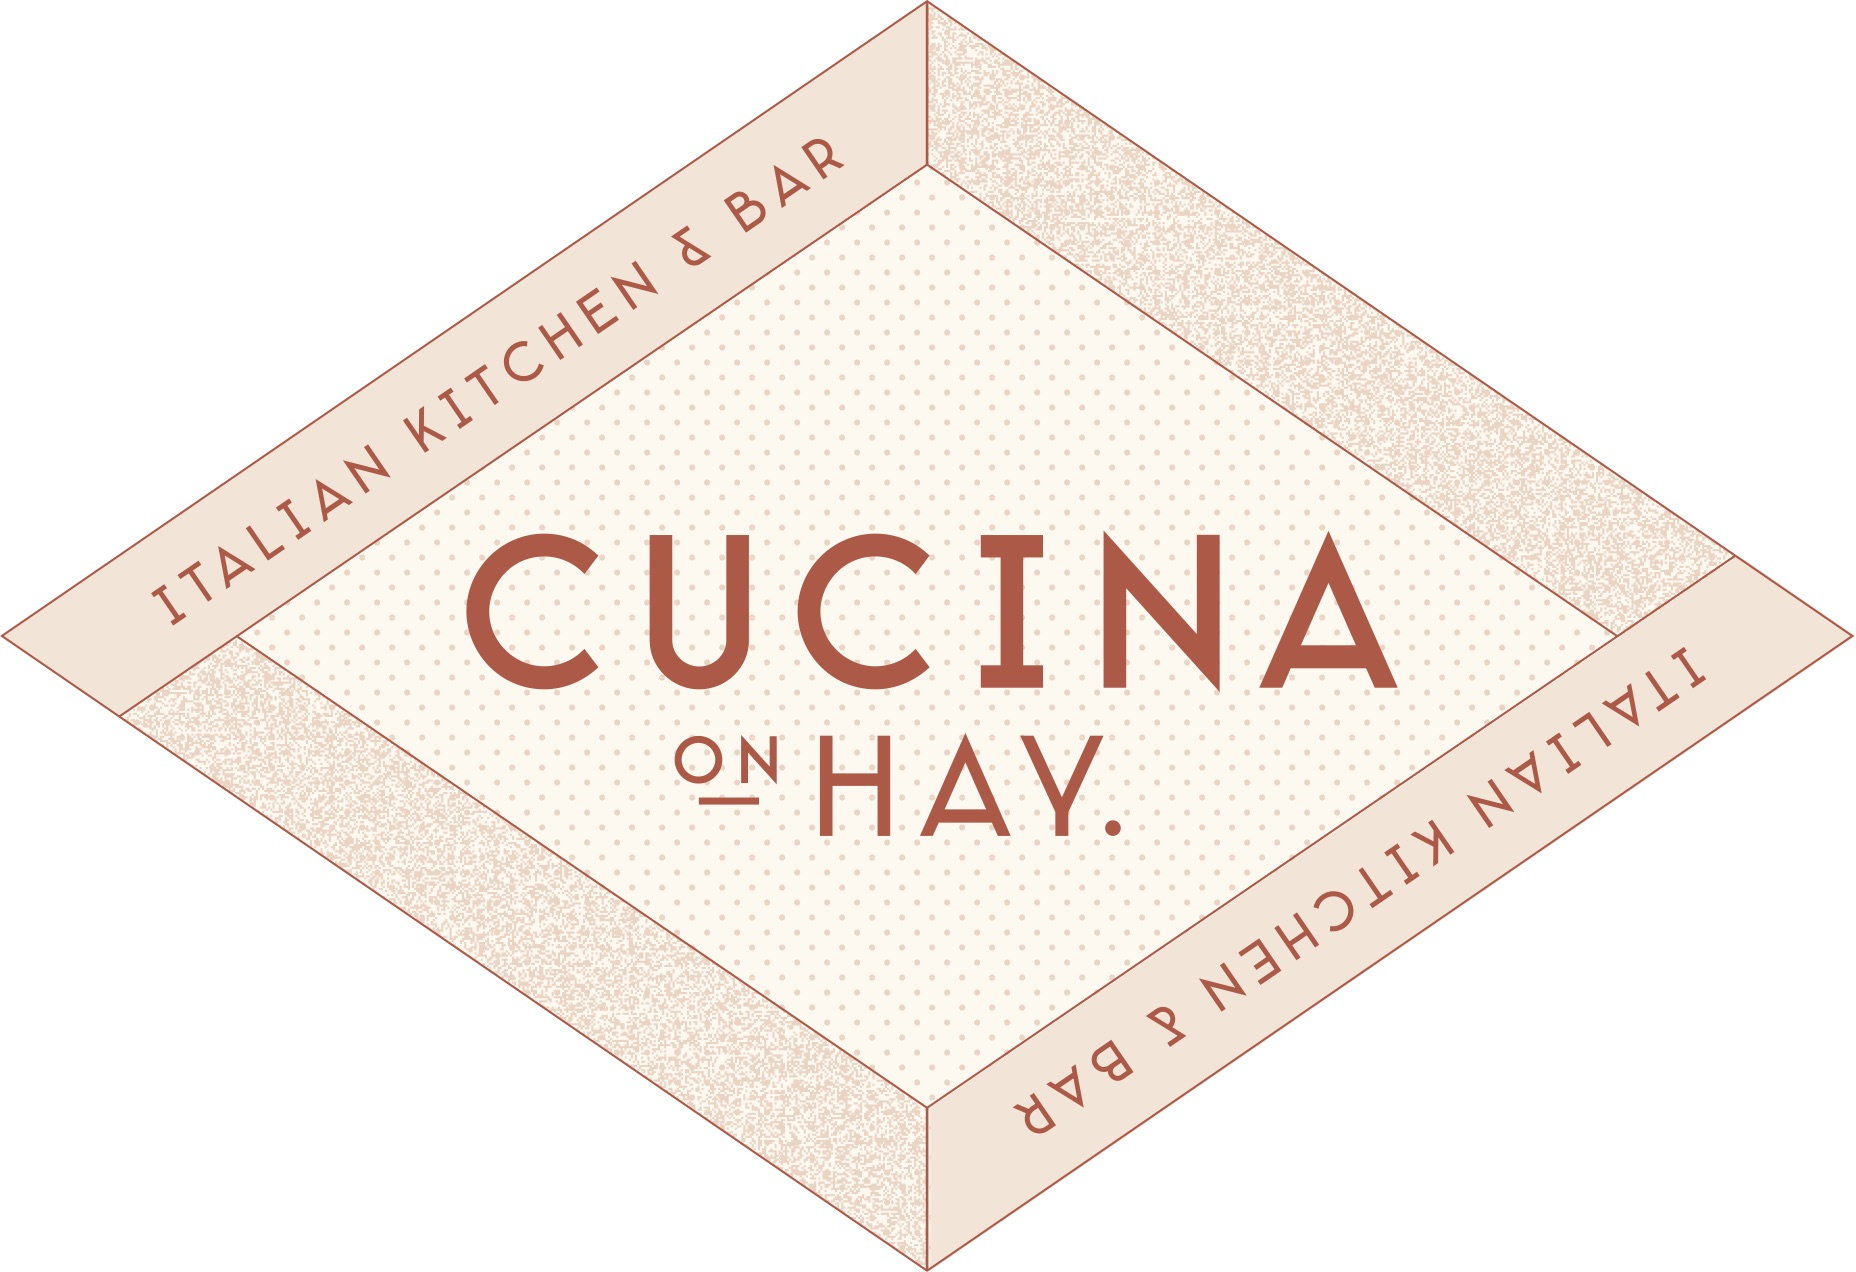 Cucina On Hay Cucina On Hay Book Restaurants Online With Resdiary